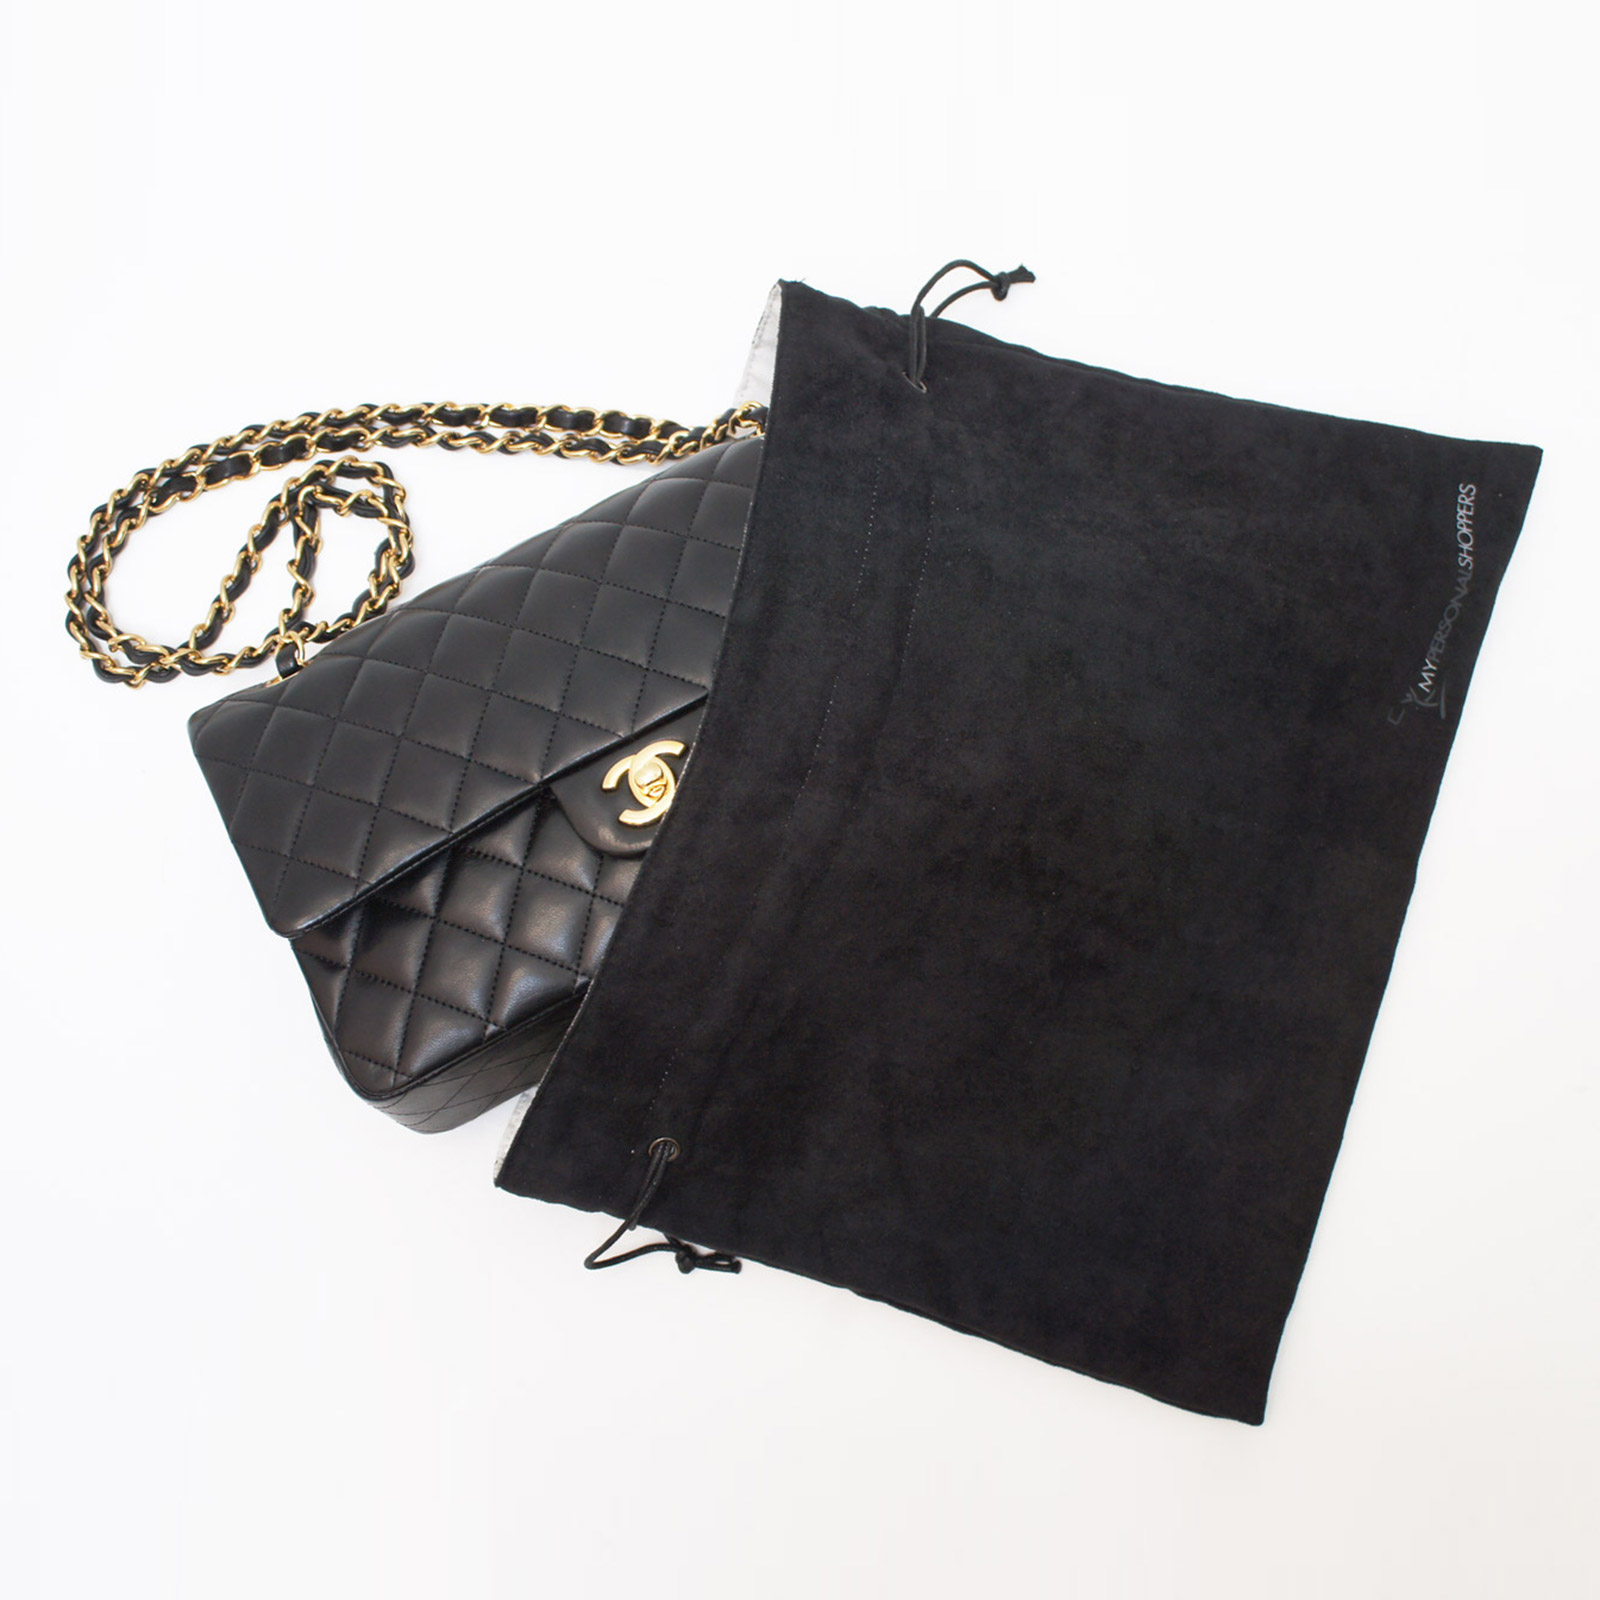 d80dc232bce506 Chanel Handbag Dust Covers | Stanford Center for Opportunity Policy ...